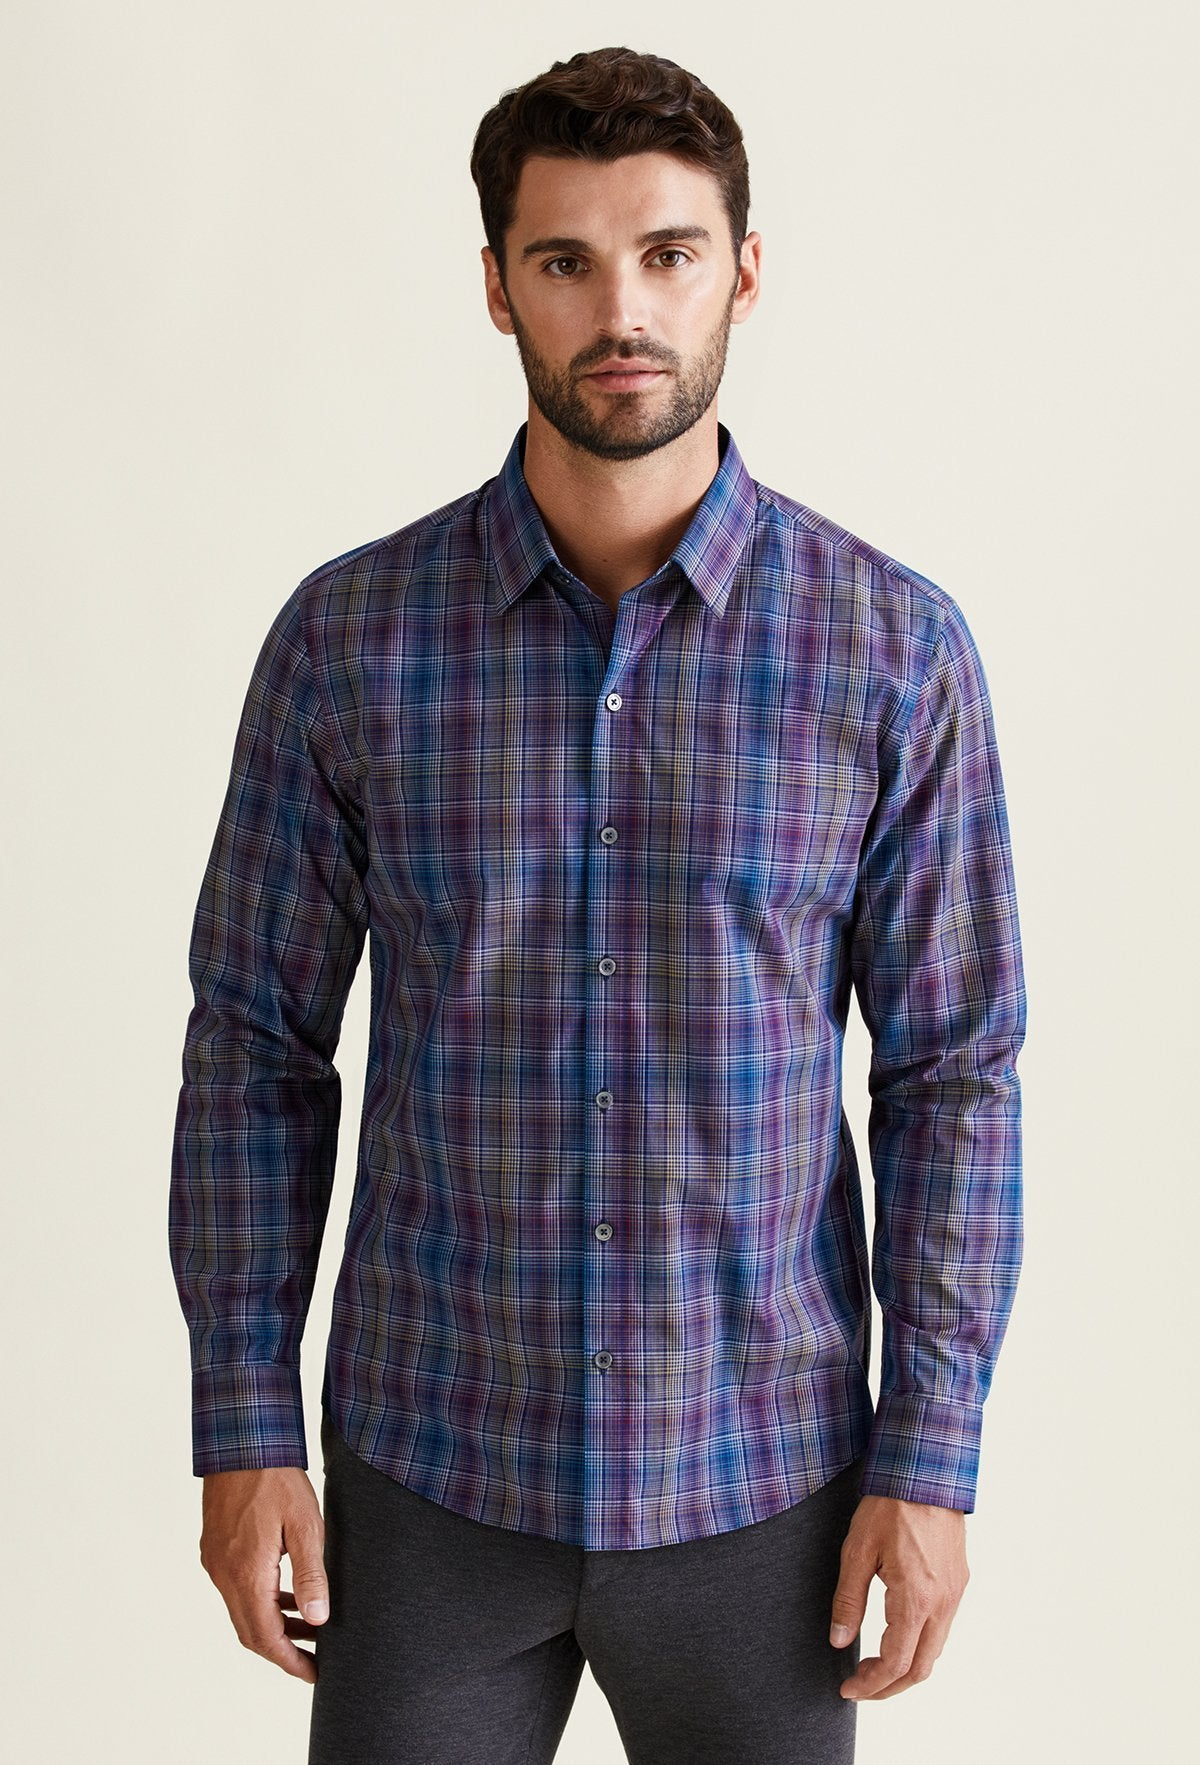 men's multicolor yellow blue and purple plaid shirt for men